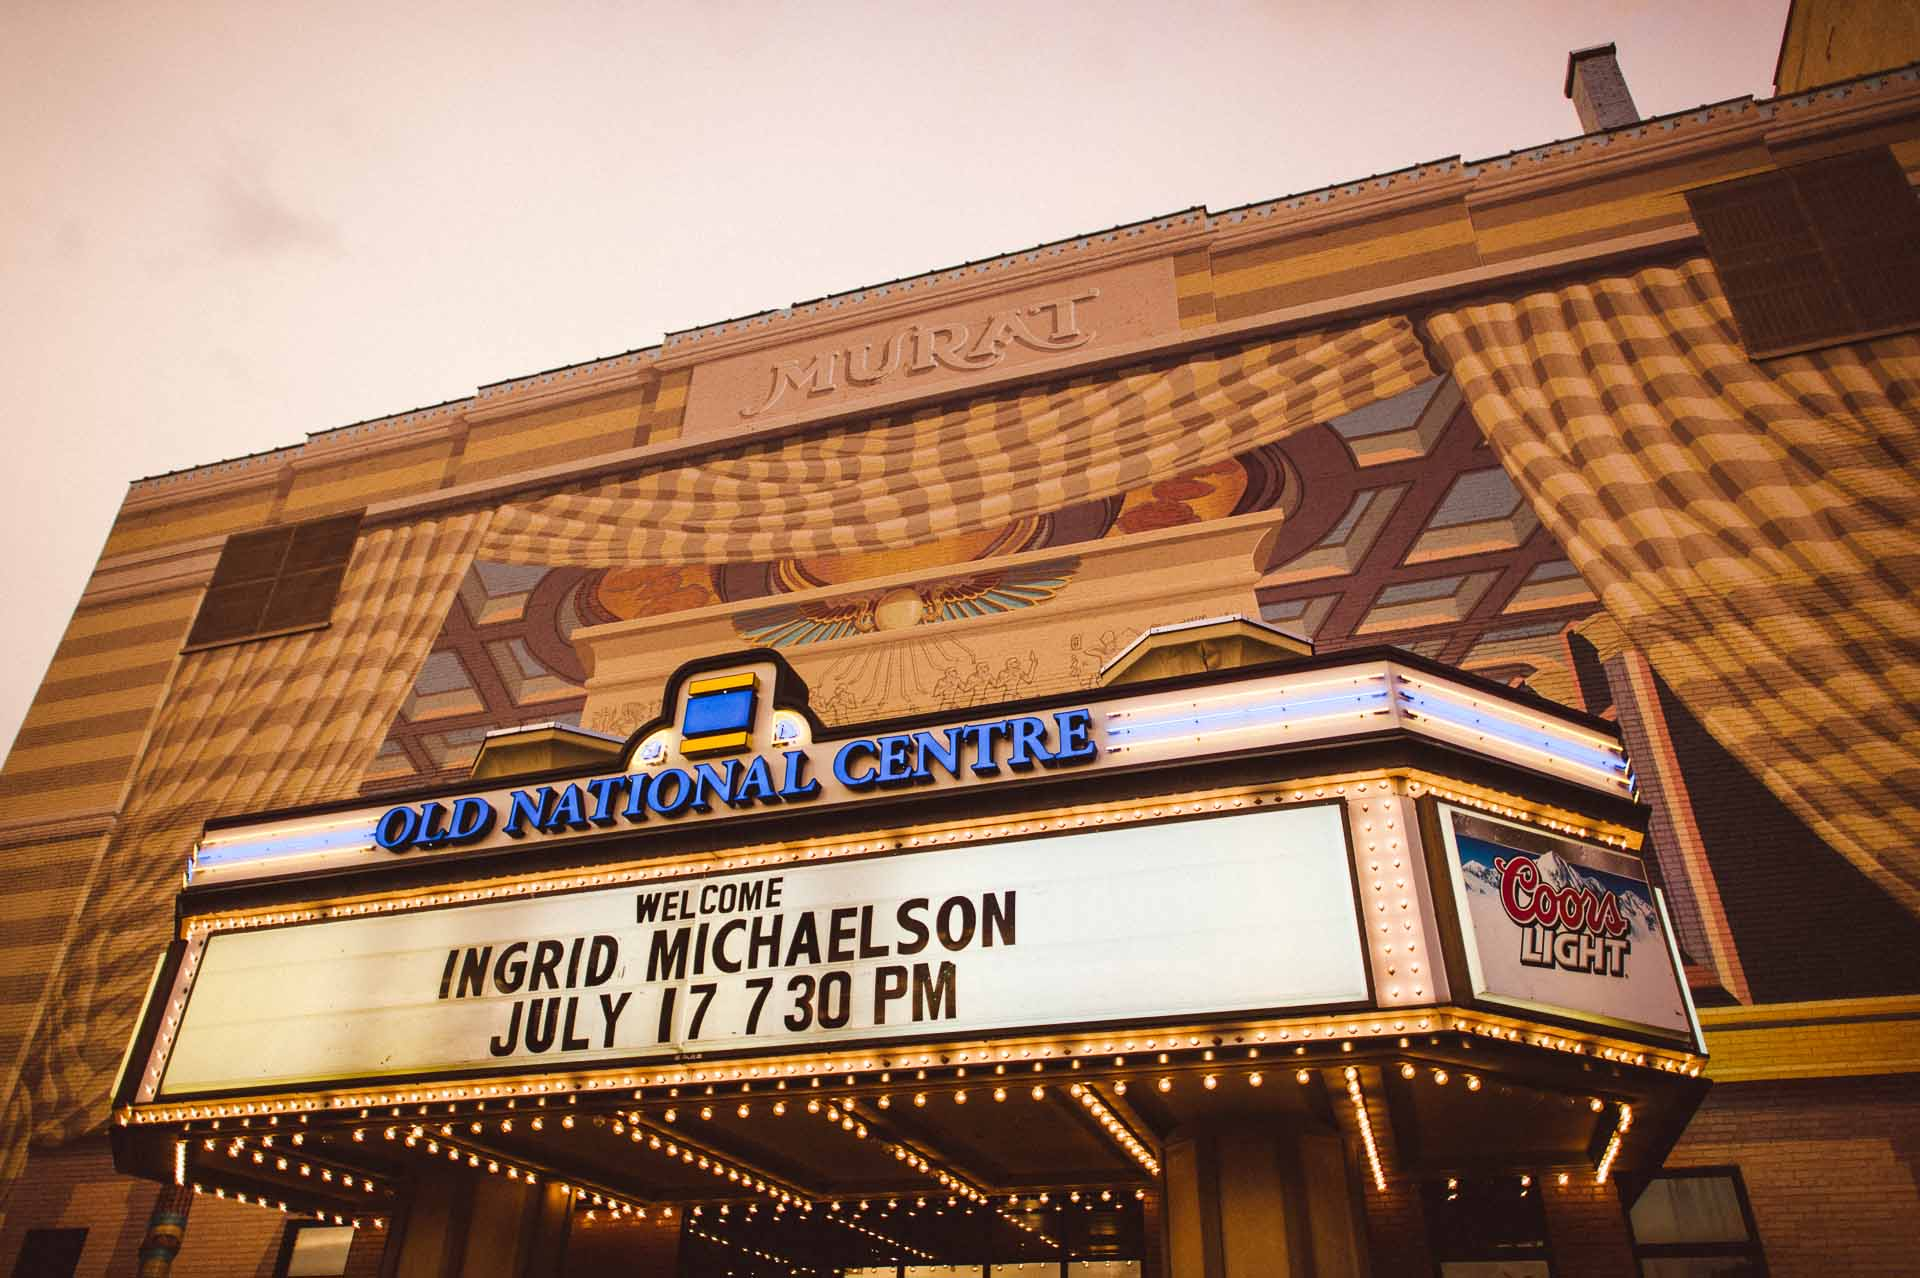 ingrid_michaelson_deluxe_murat_old_national_centre_indianapolis-071712-33